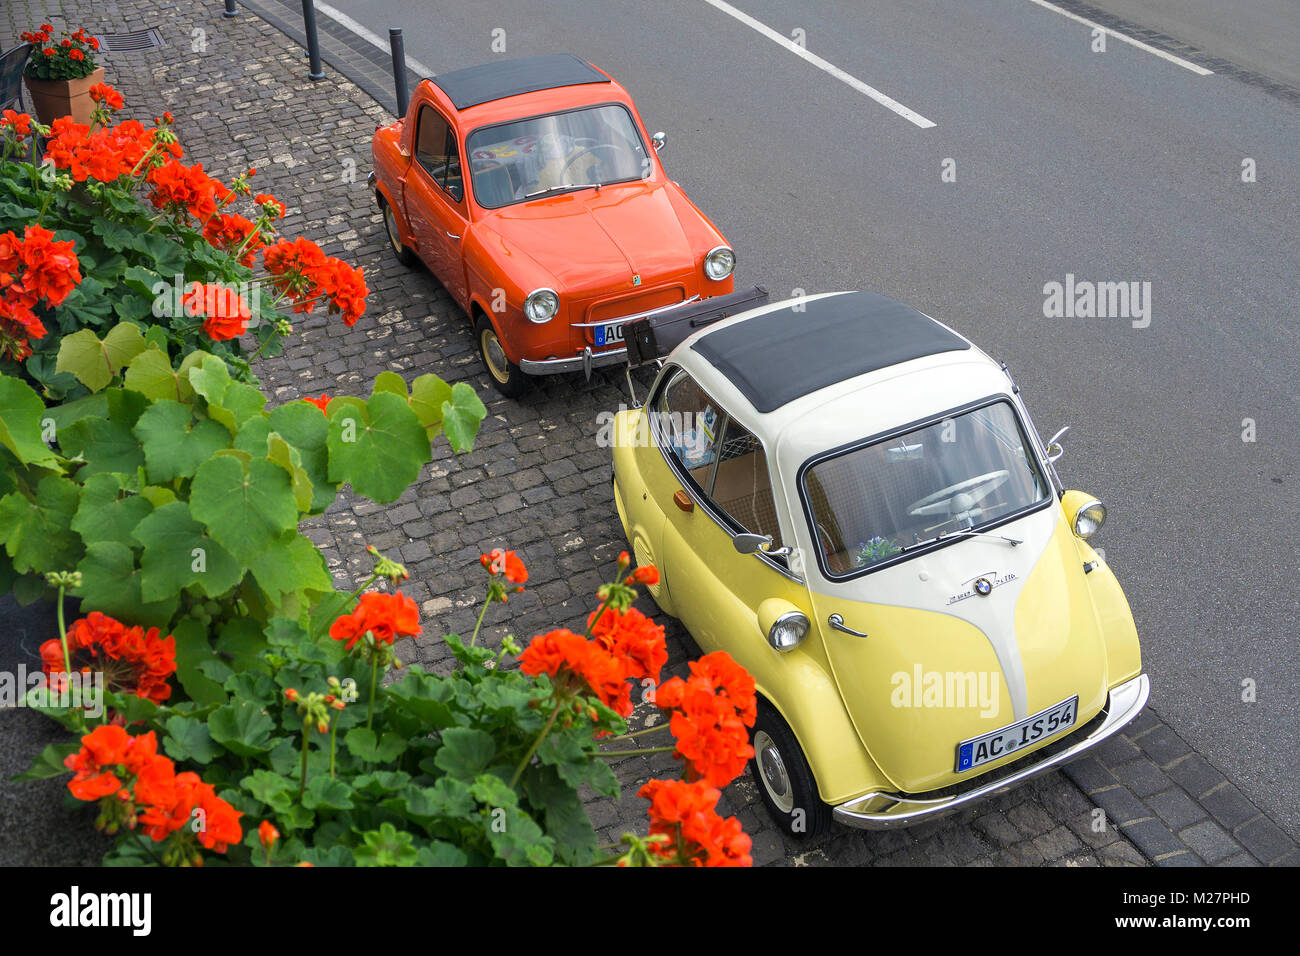 Veteran Cars Stock Photos & Veteran Cars Stock Images - Alamy